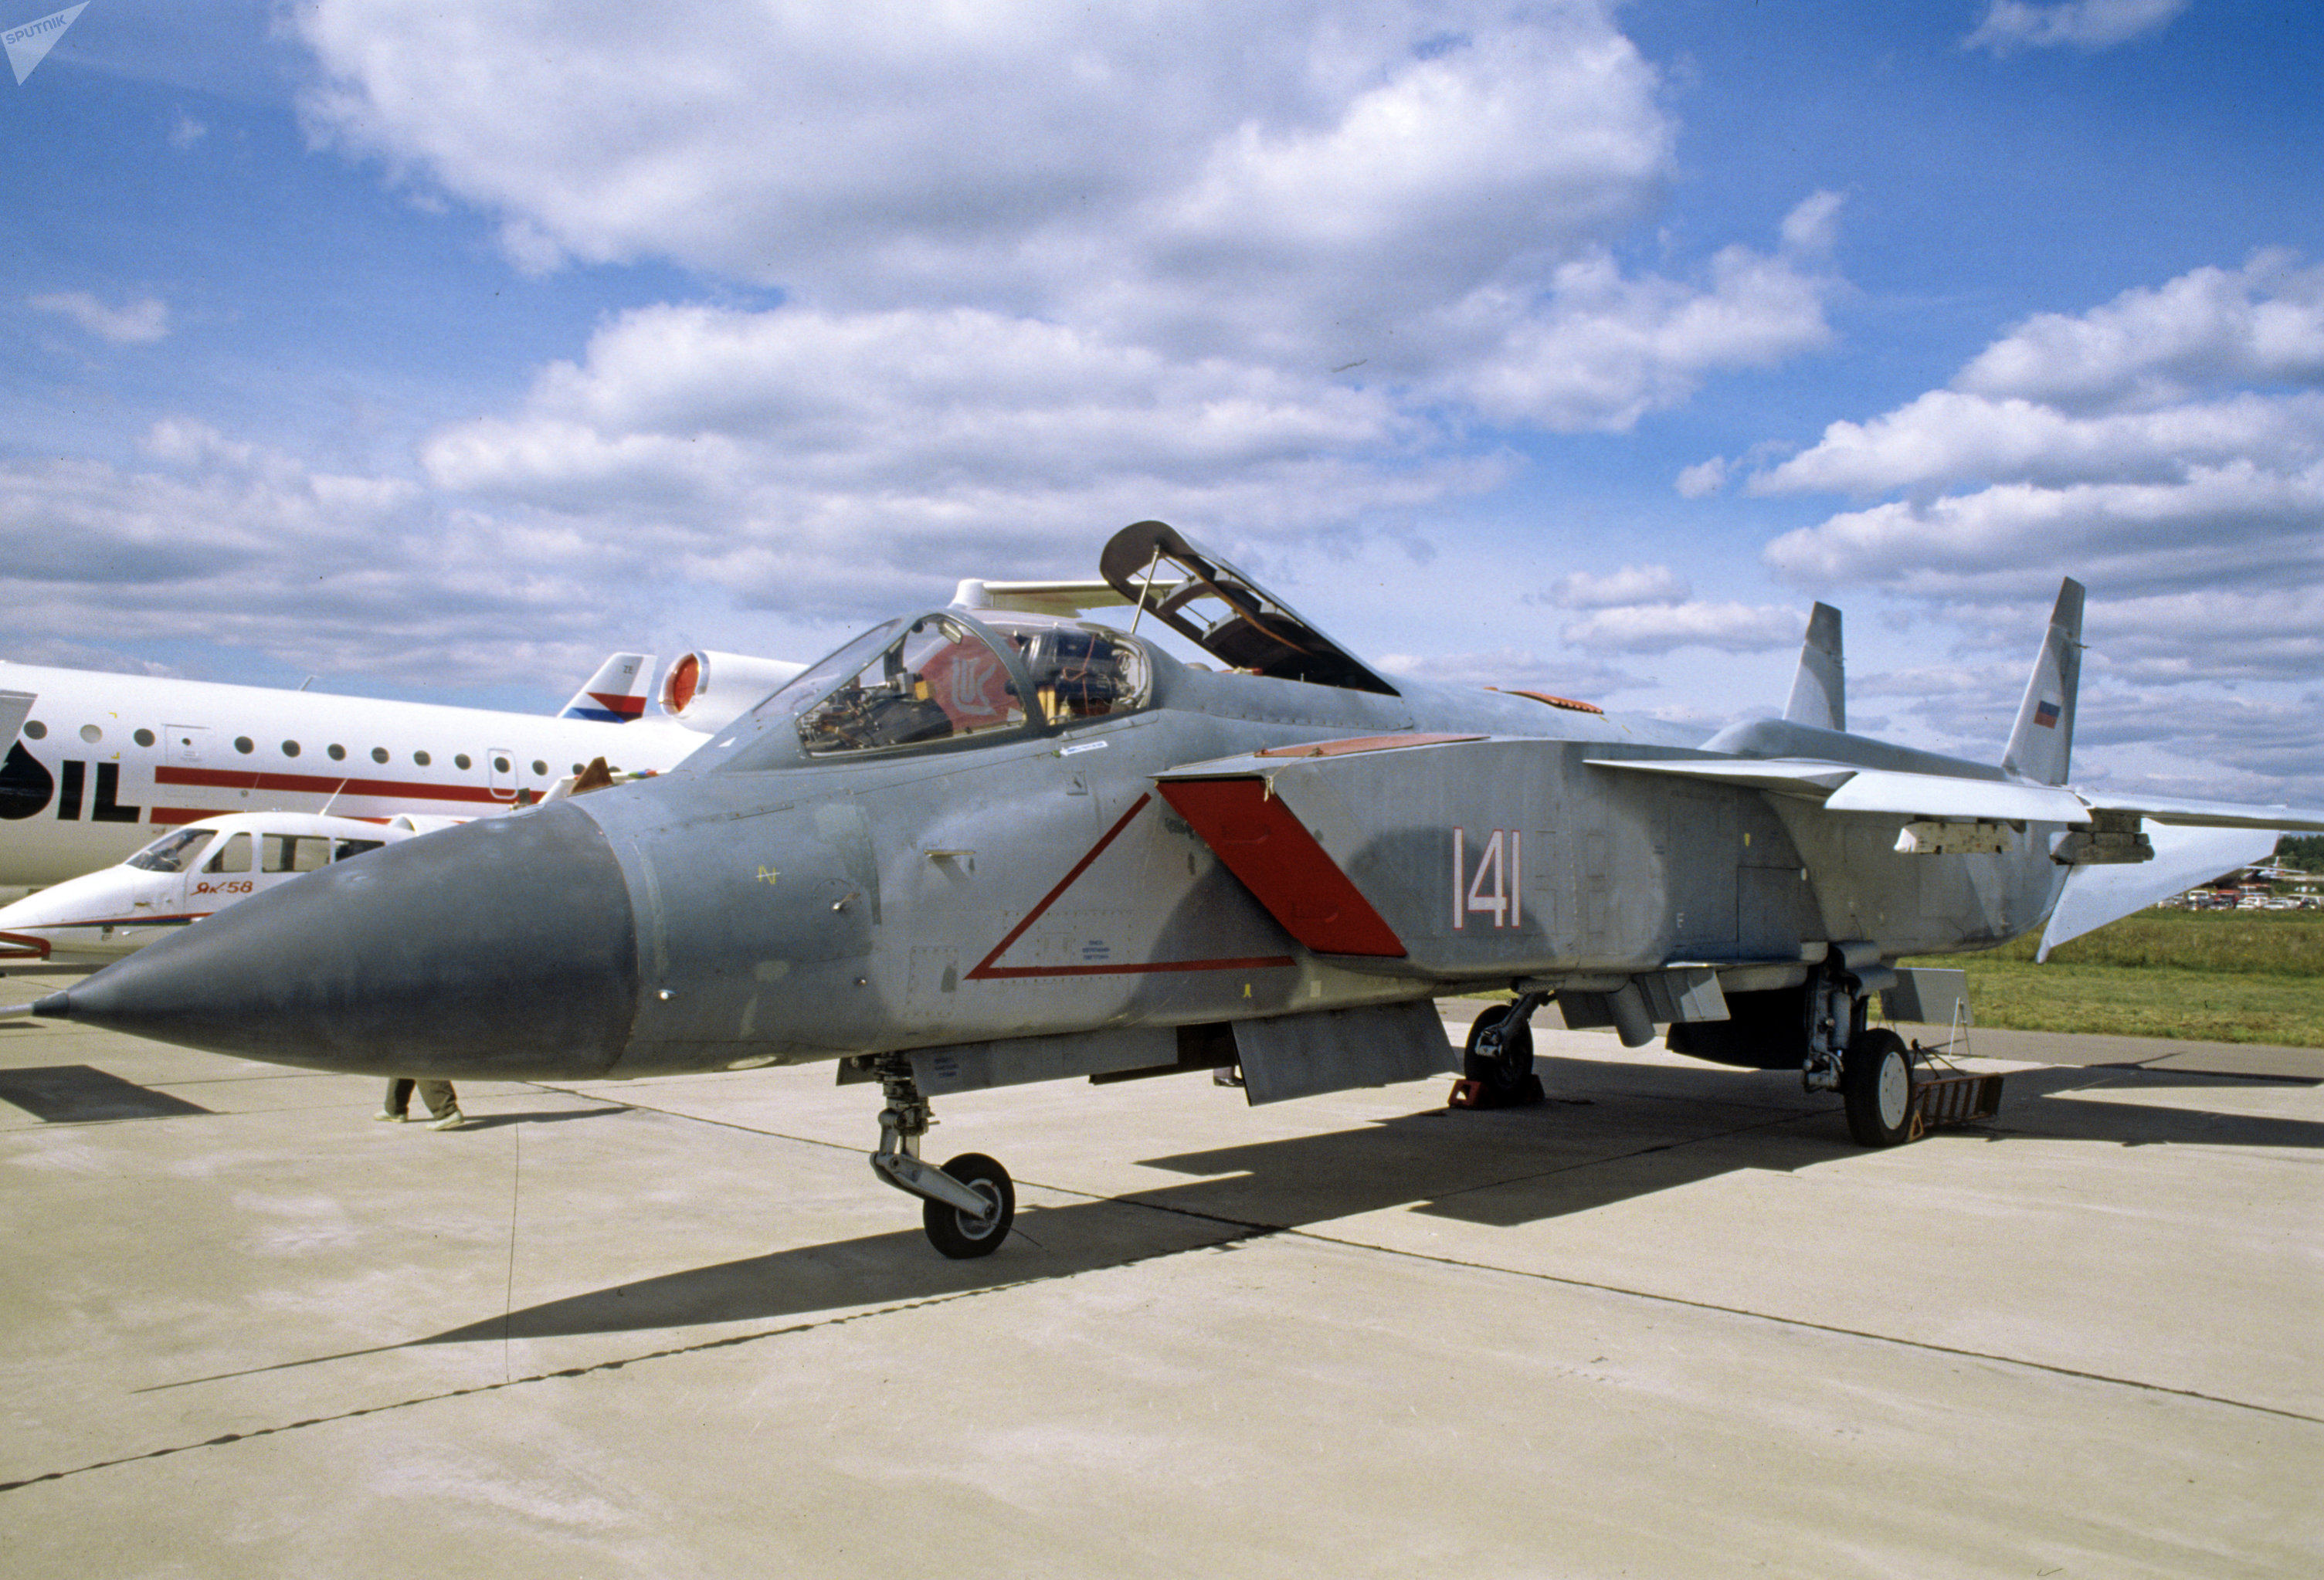 Yakovlev Yak-141 on display at the MAKS-95 airshow outside Moscow in August 1995.